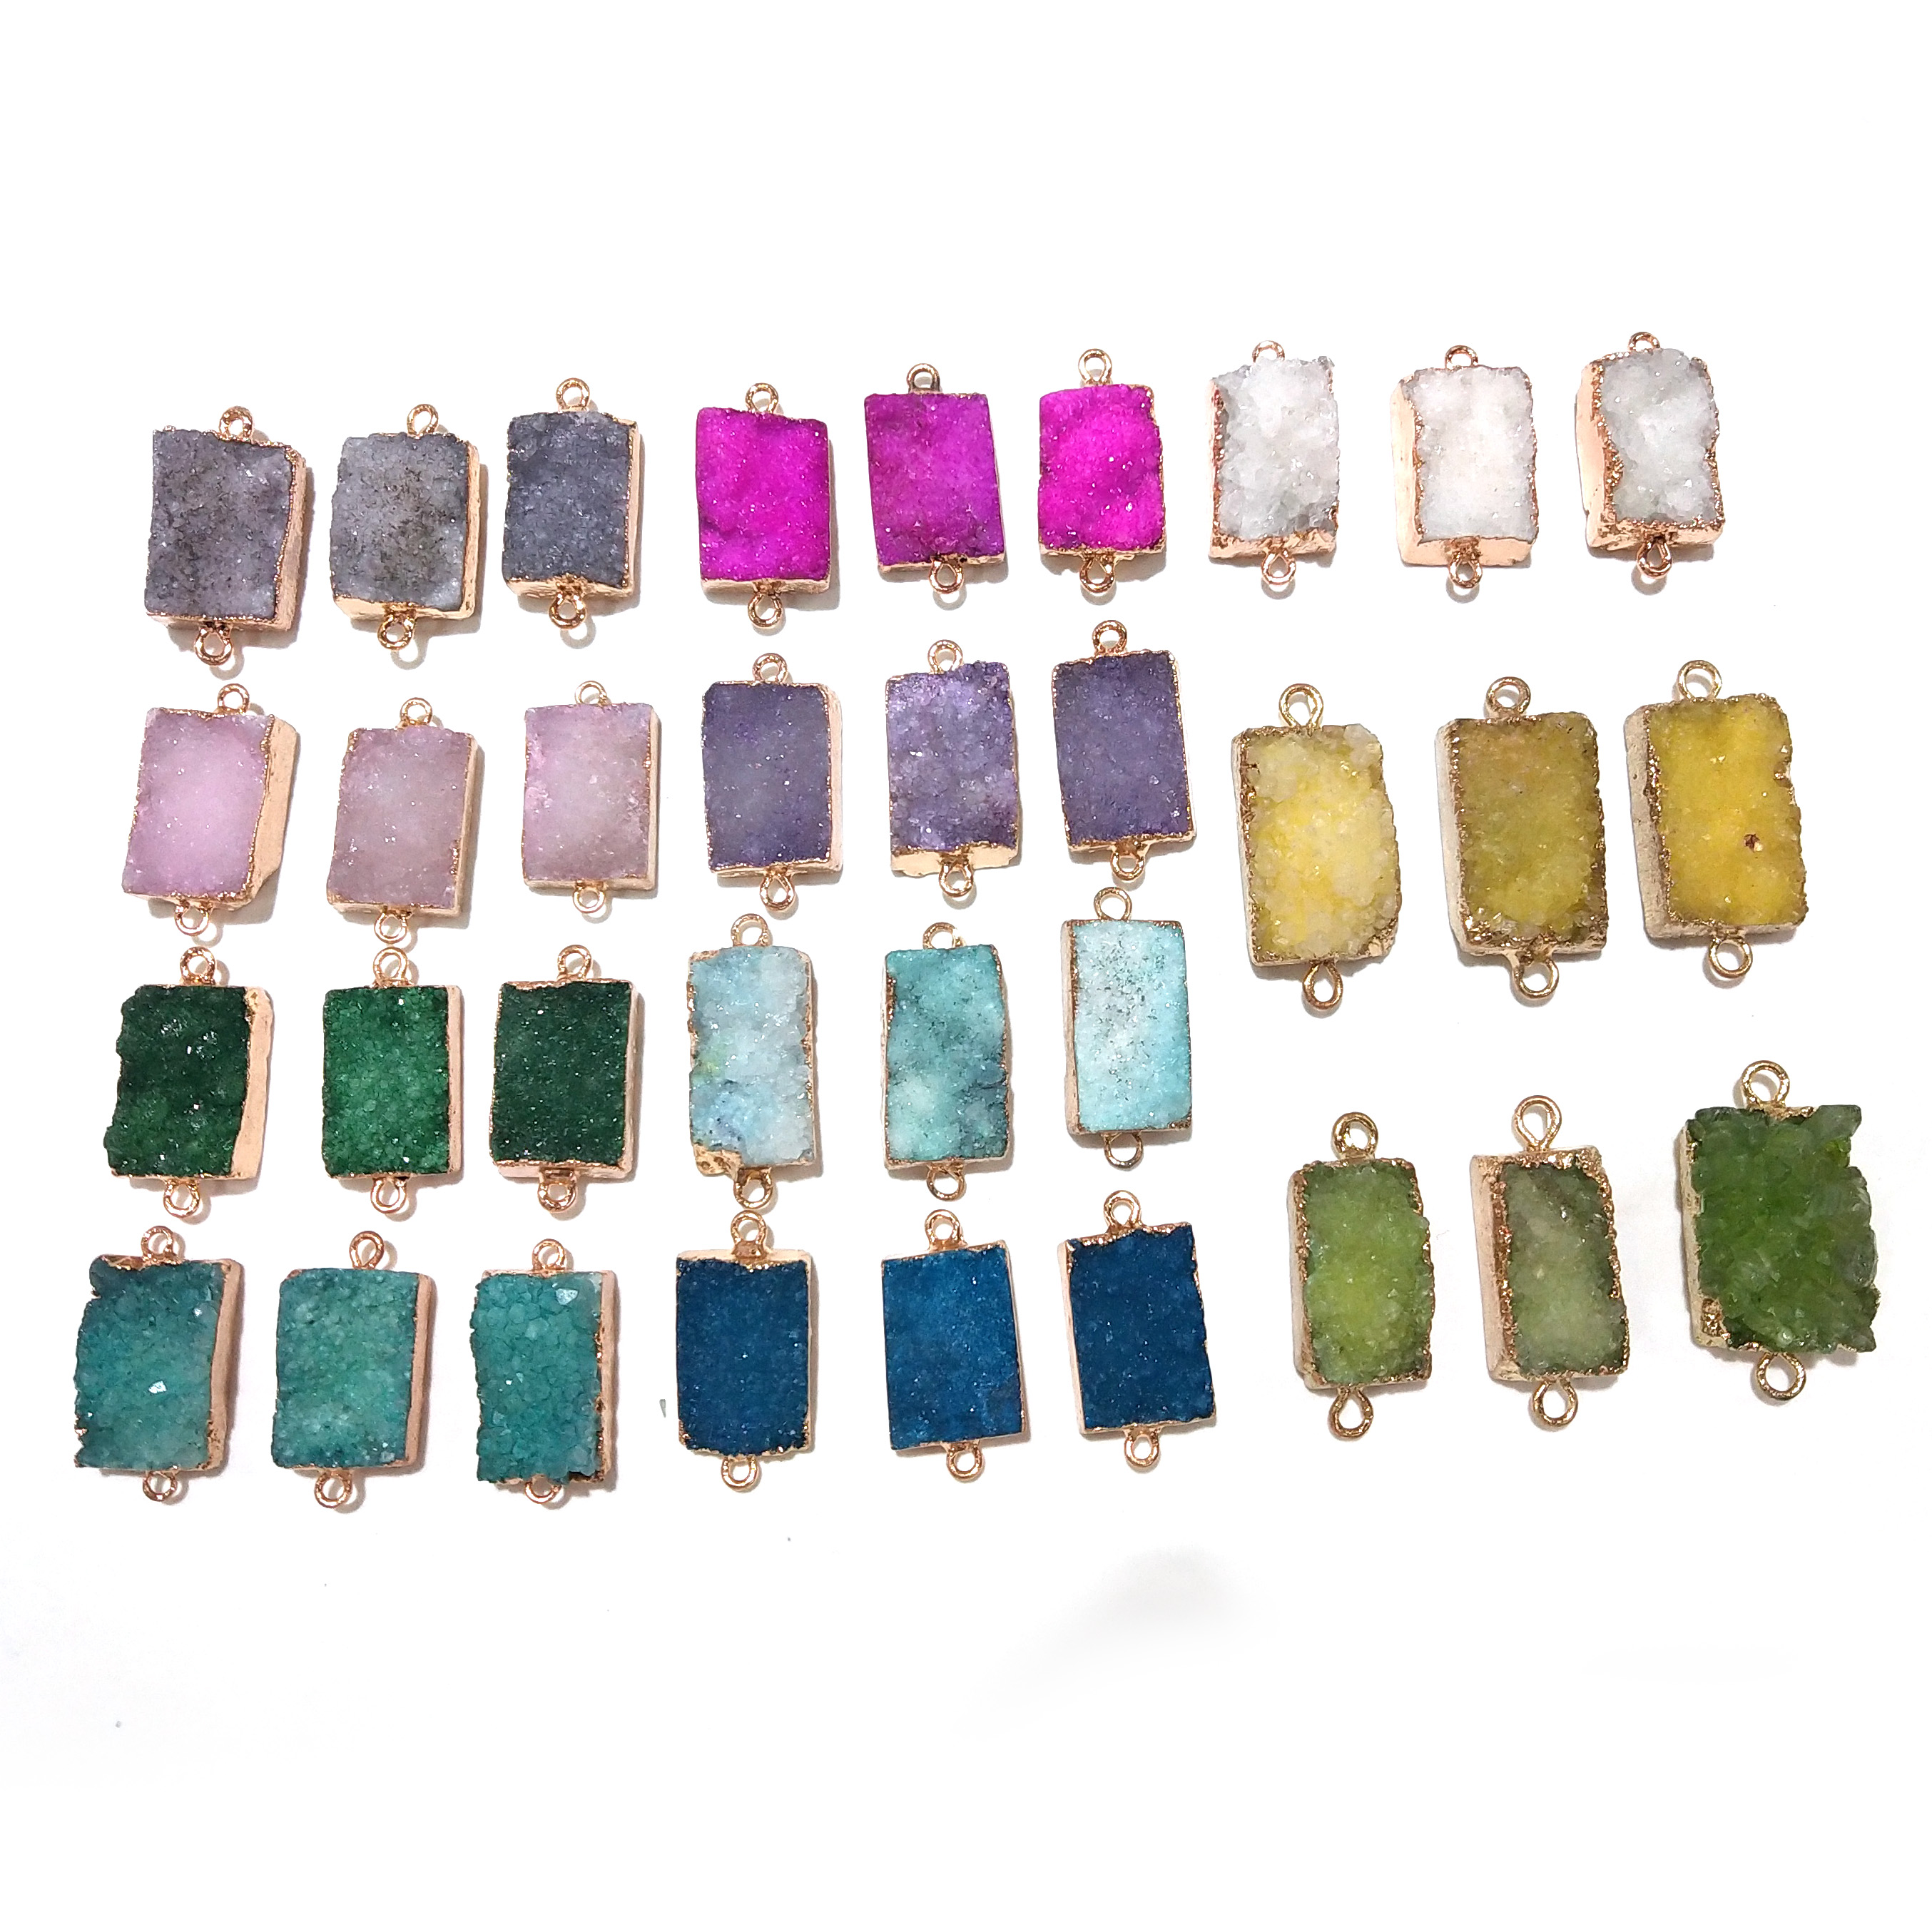 11Colors Natural Stone Charms Pendants Crystal Cluster Pendant For  Jewelry Making Supplies Trendy Jewelry DIY Necklace Bracelet